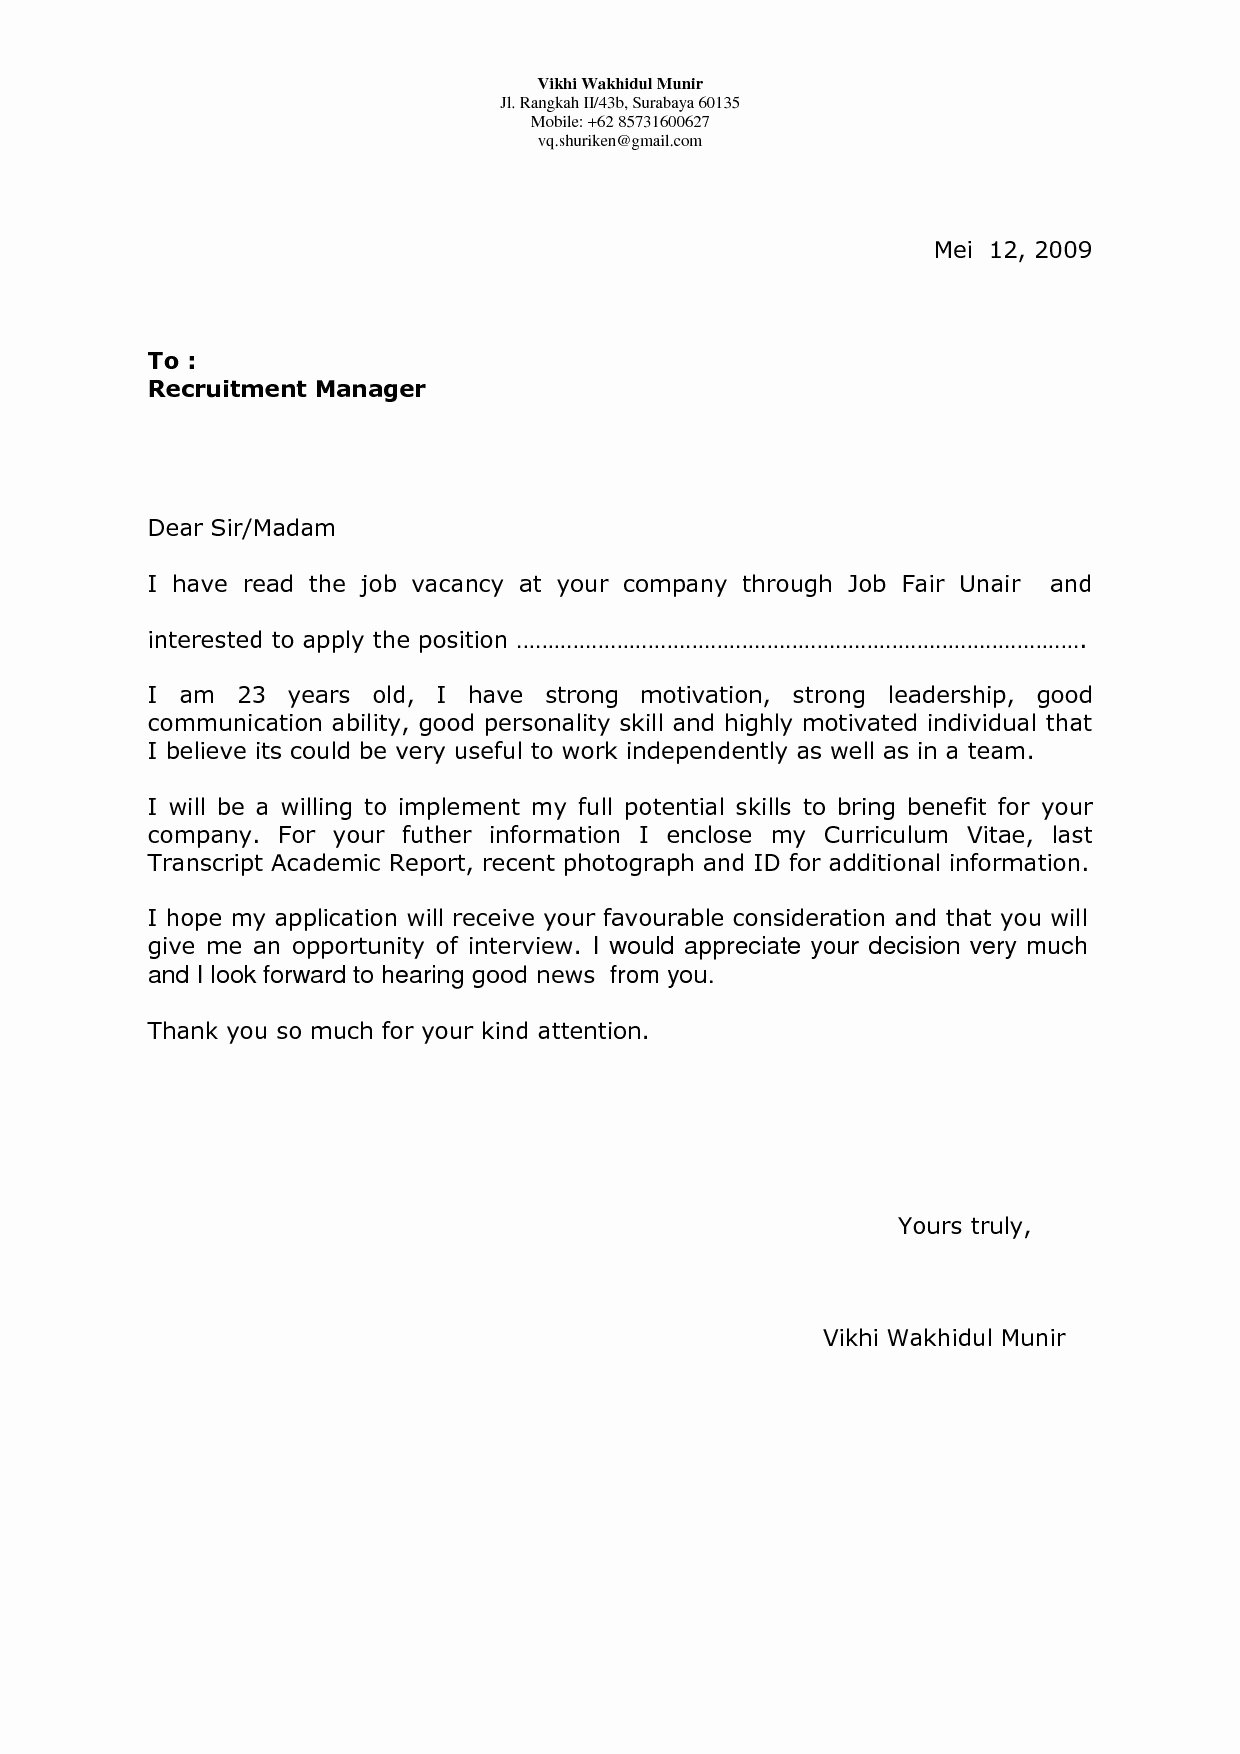 Cover Letter Example for Job Fair Valid Cover Letter for